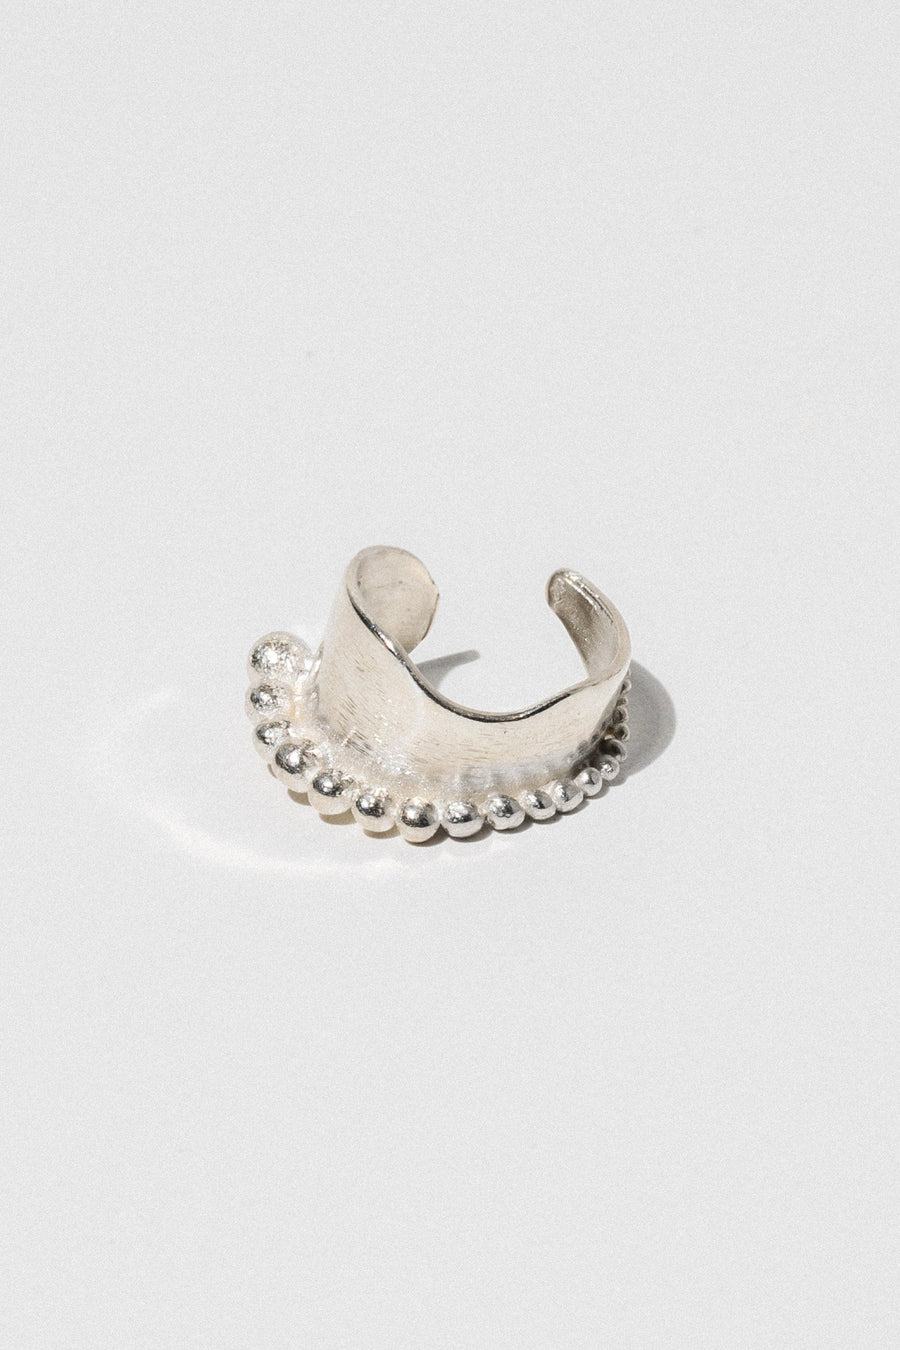 Aziza Handcrafted Jewelry Open Size / Silver Nazil Ring